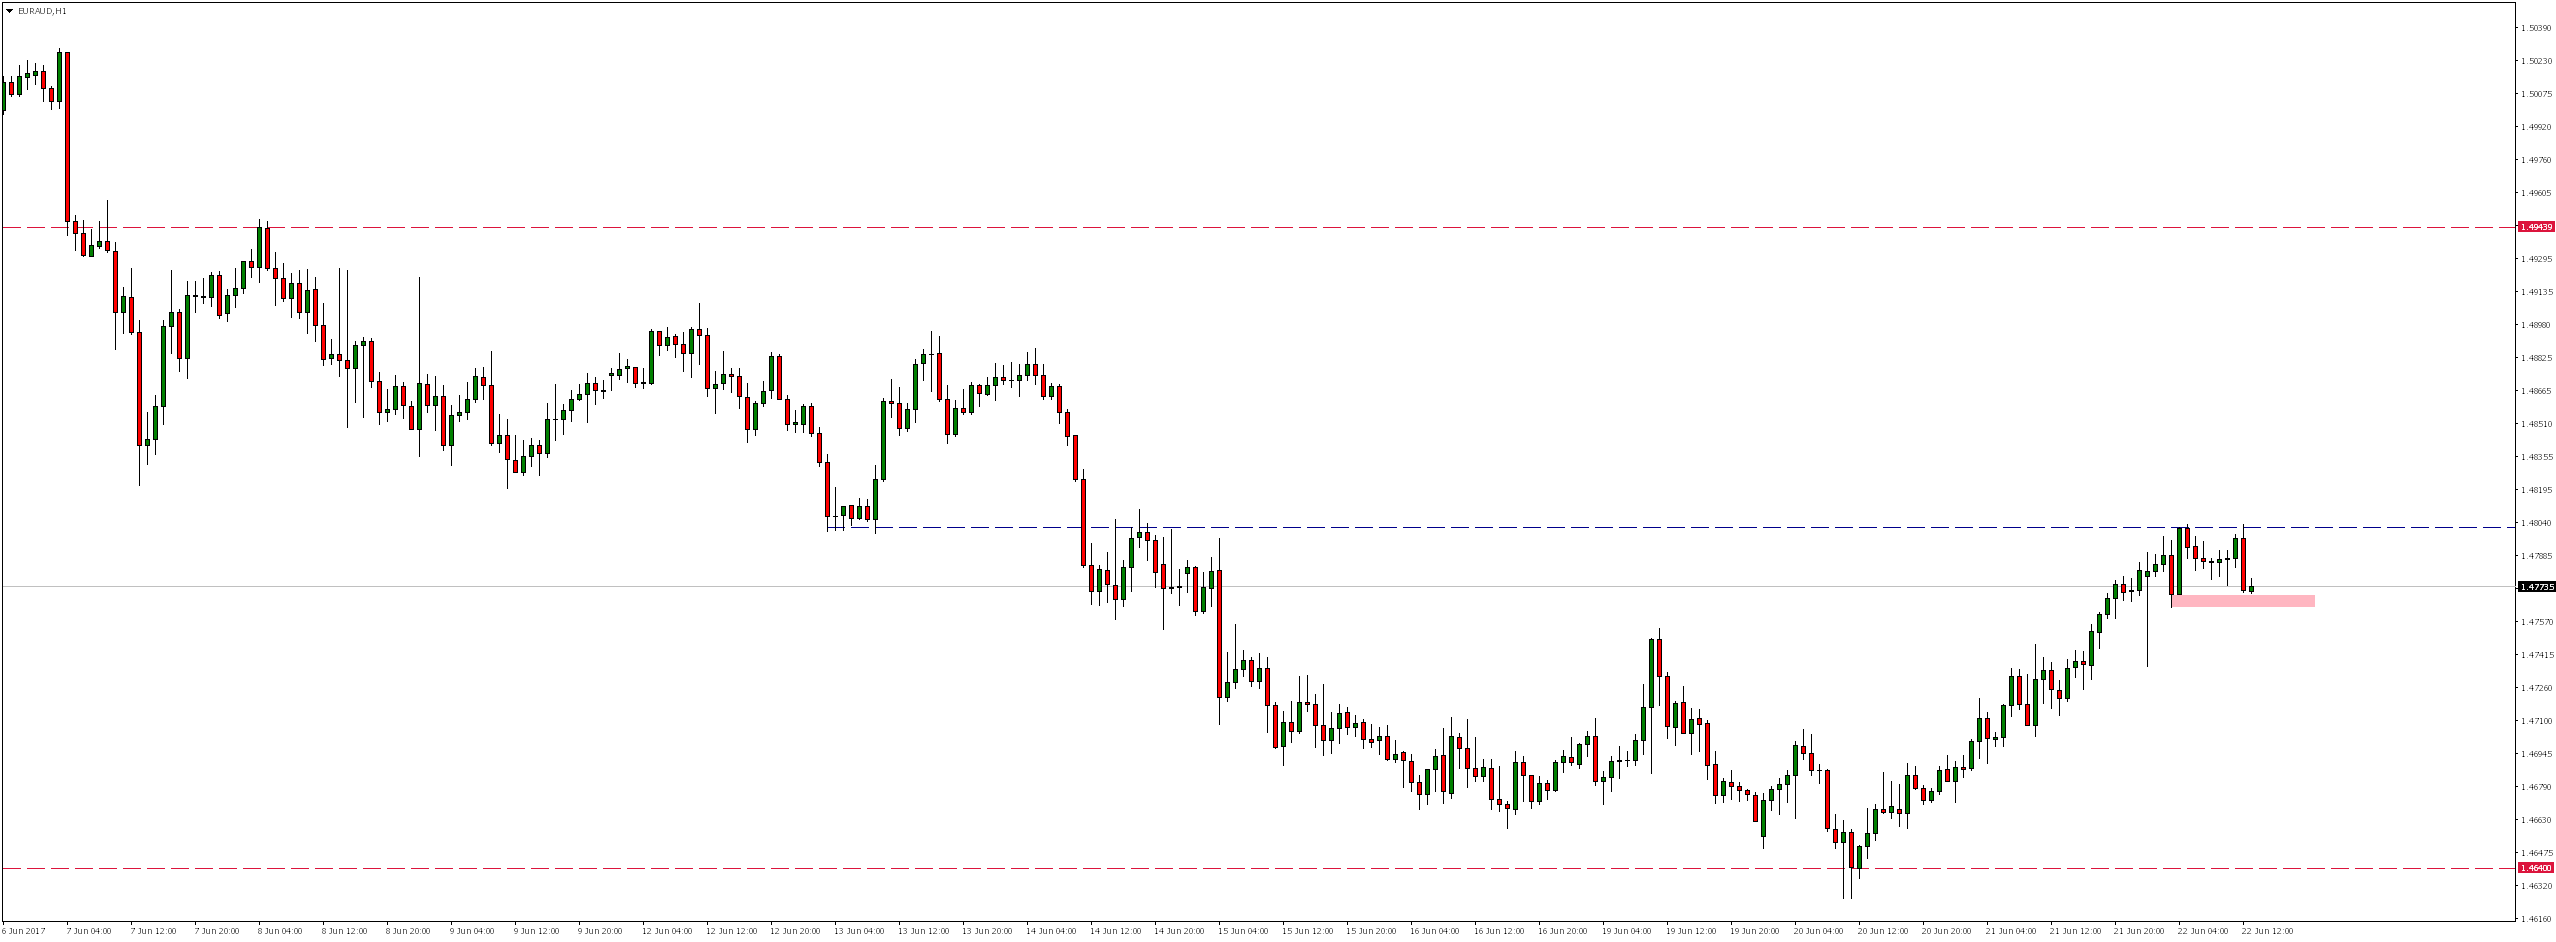 Option For Today - PUT on EURAUD 22/06/2017 - comparic.com